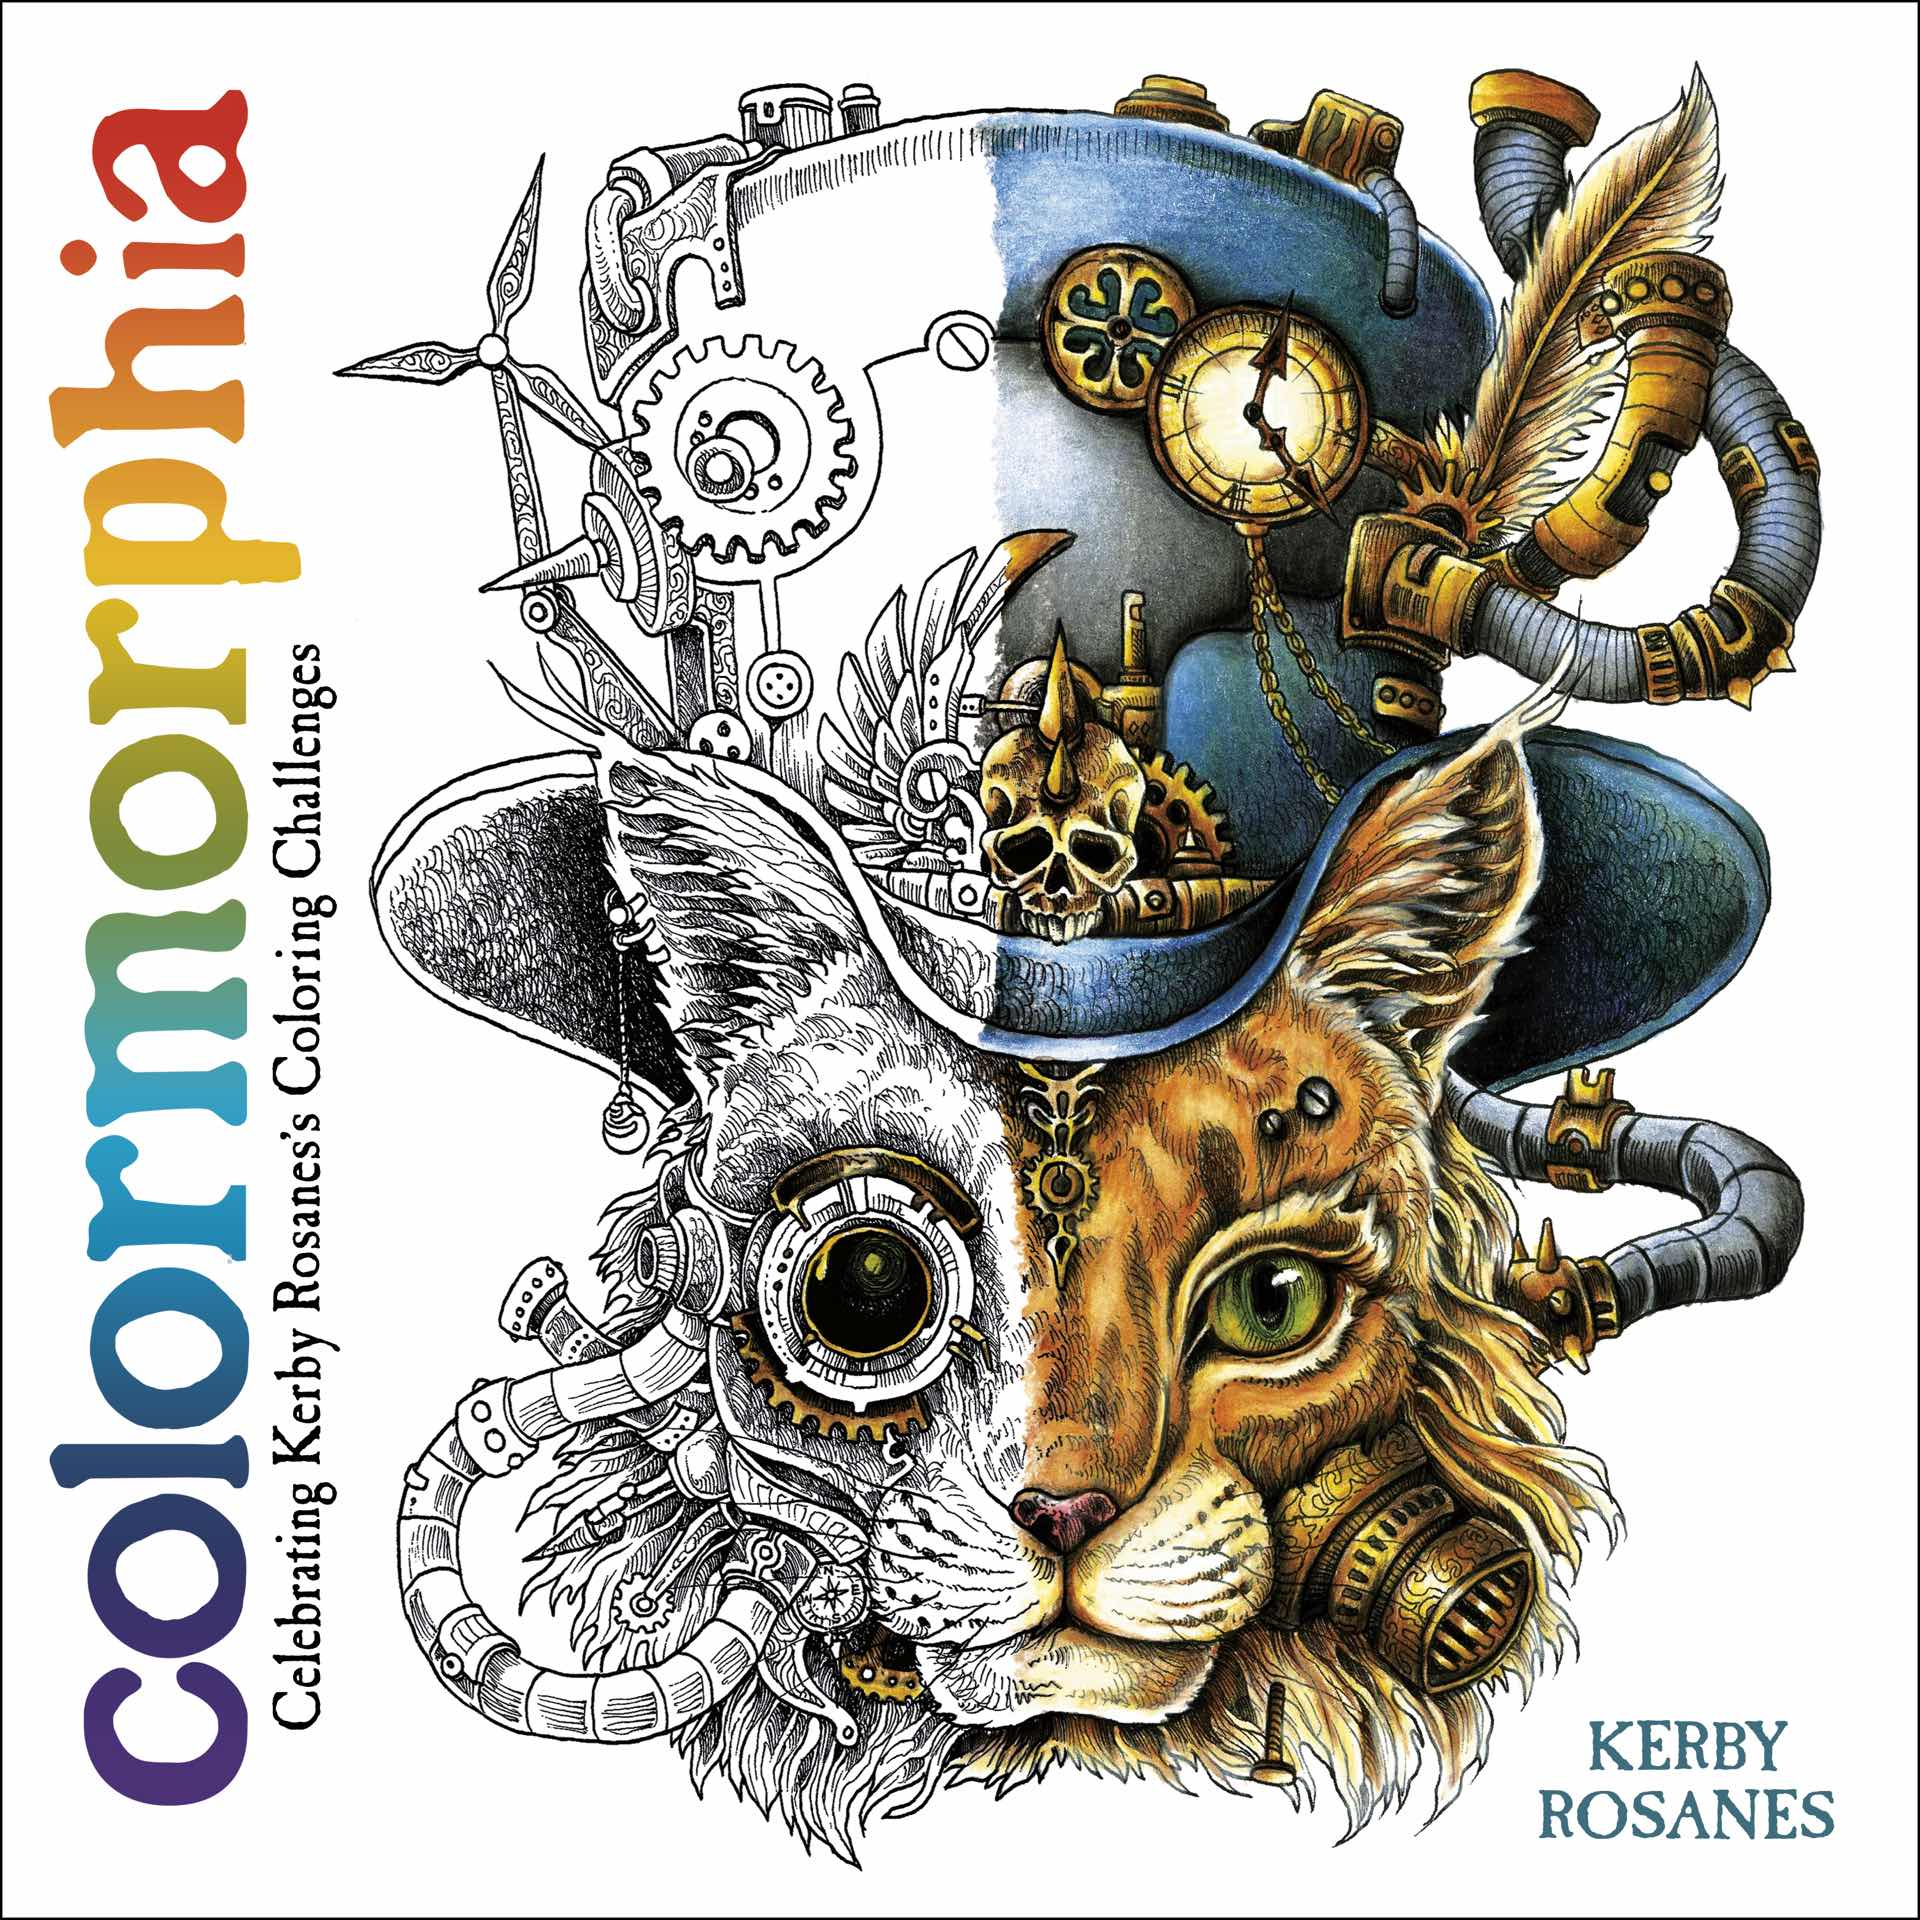 Colormorphia coloring book by Kerby Rosanes.